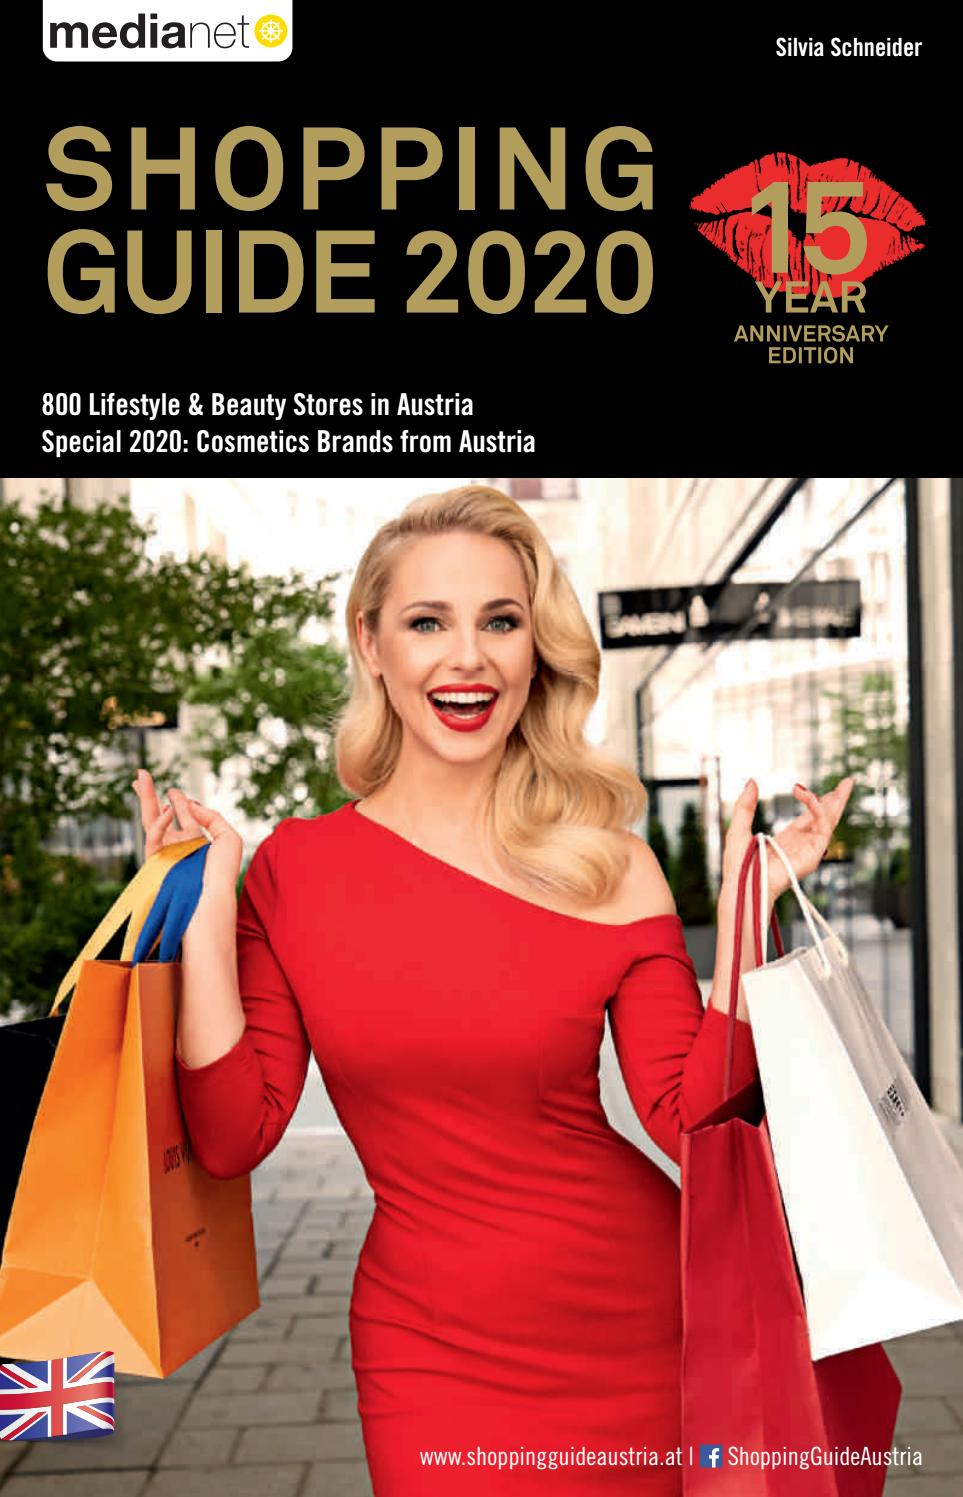 shopping guide 2020 - enmedianet - issuu